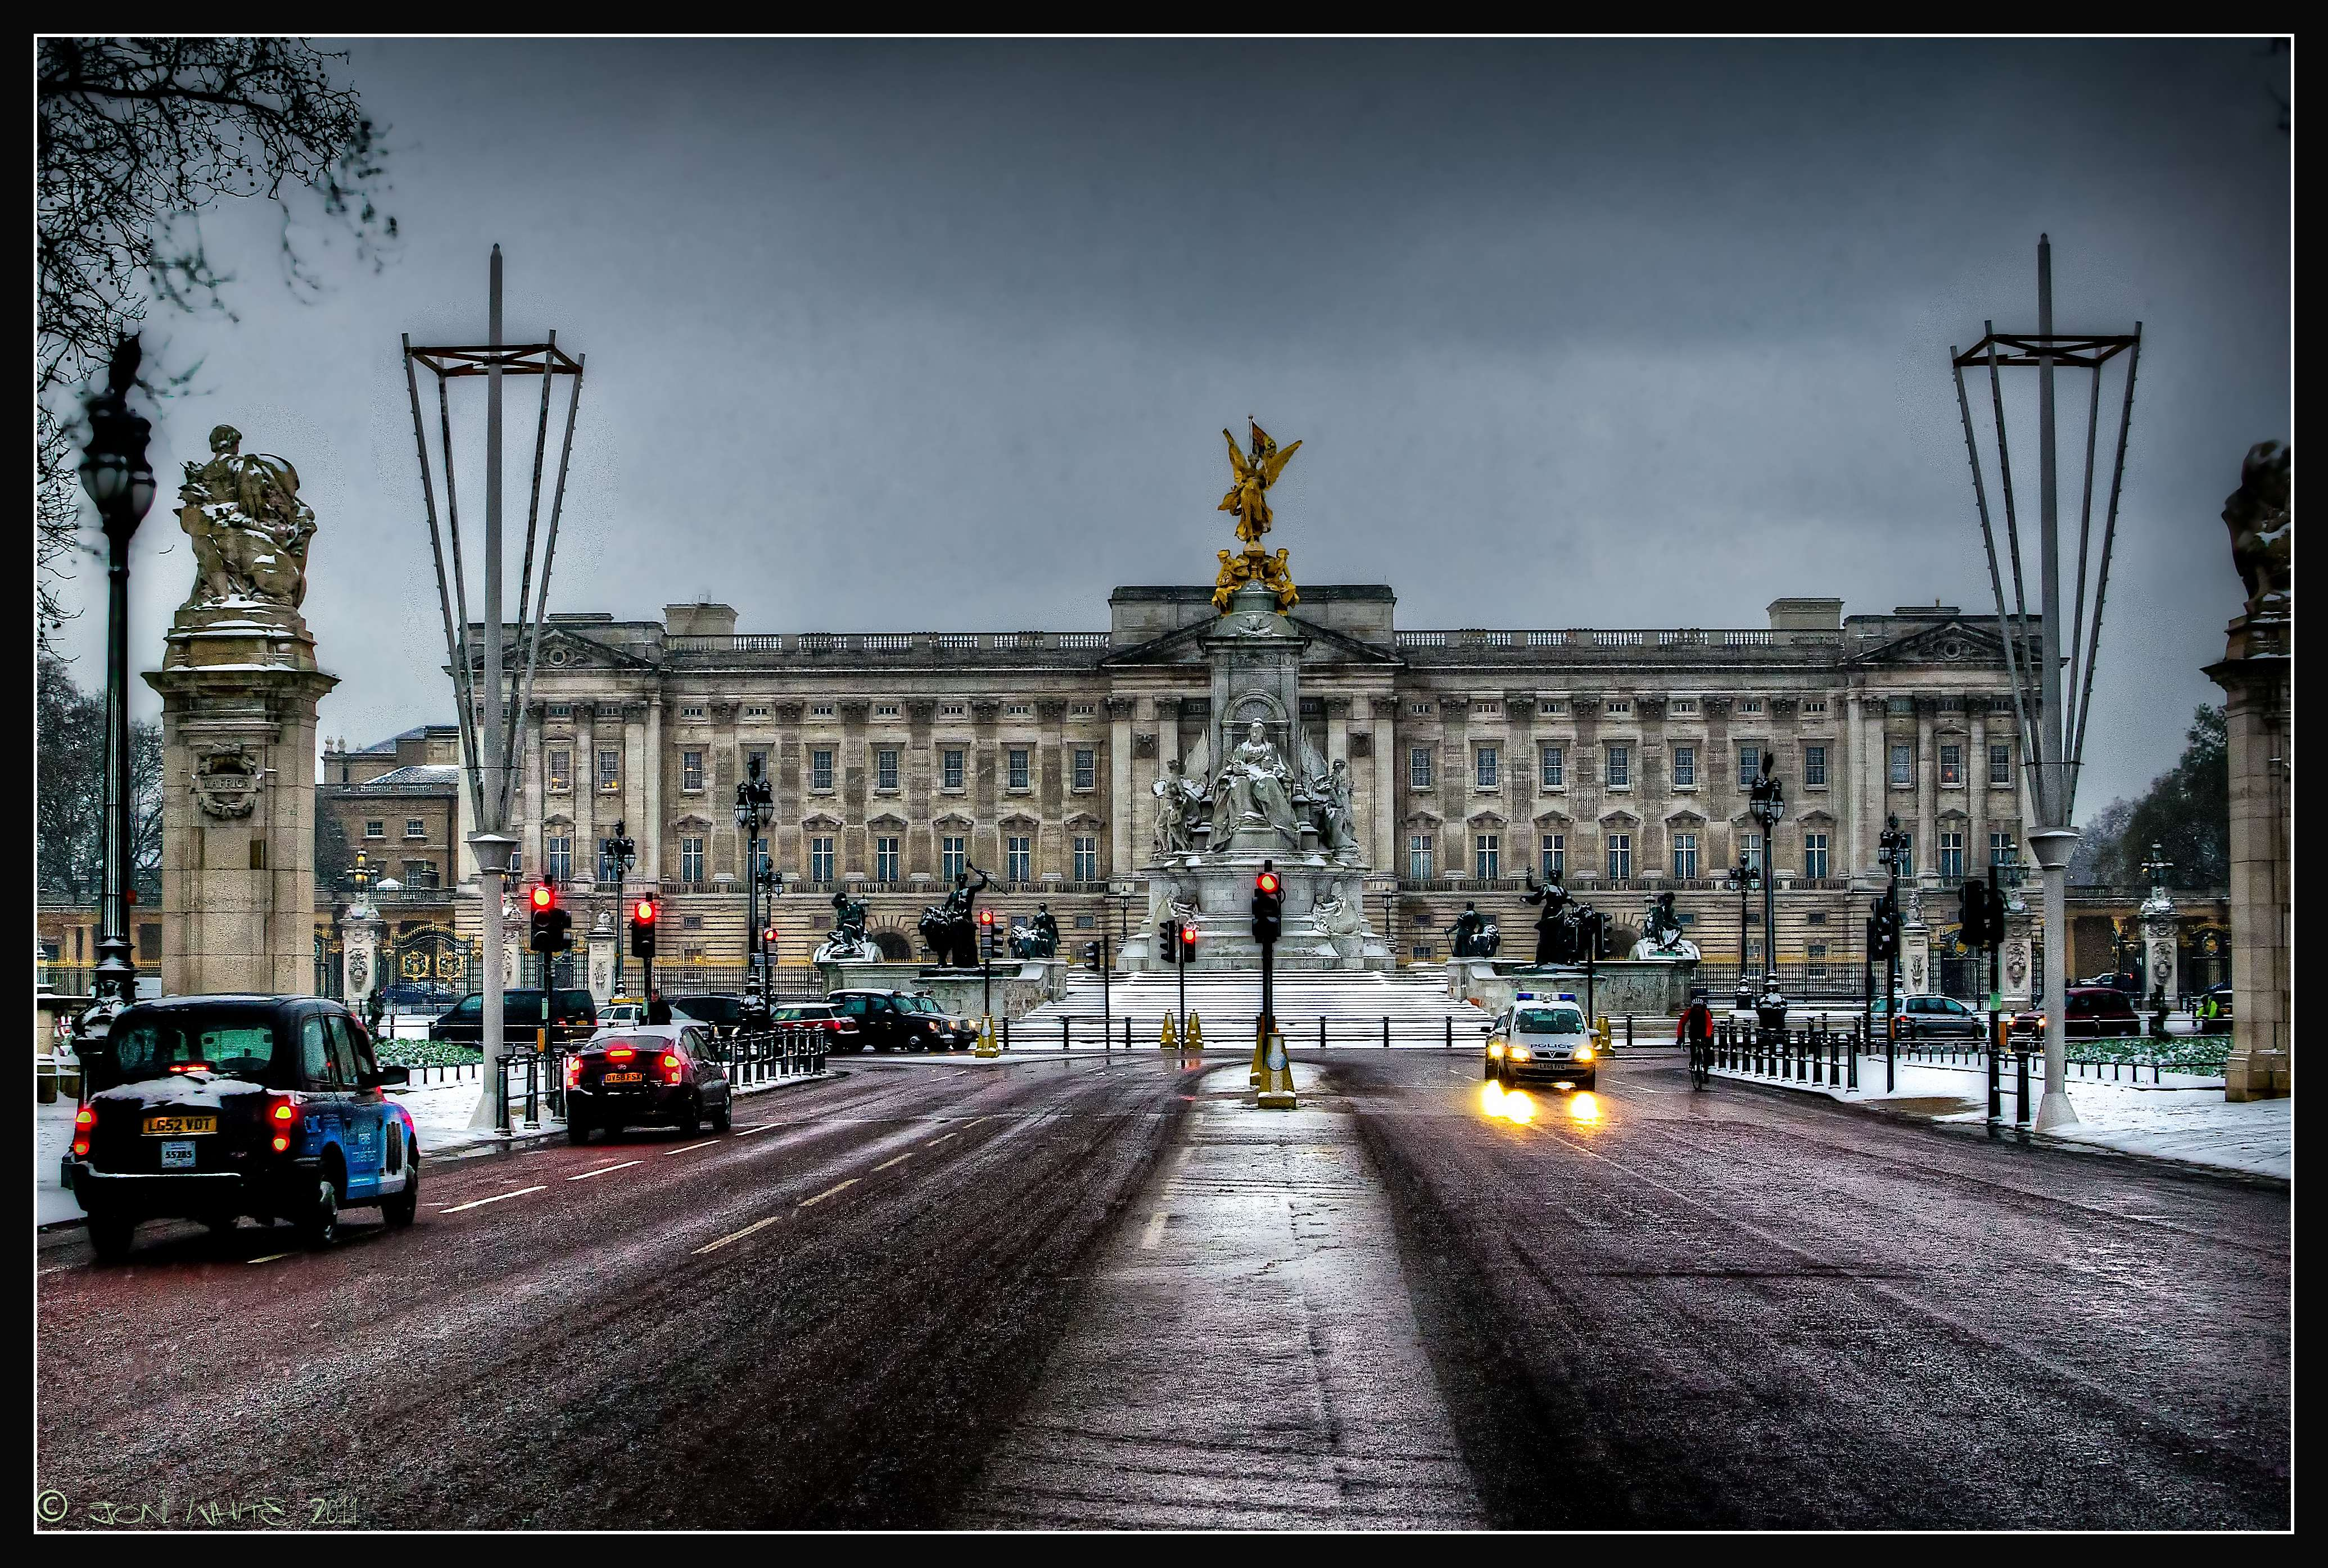 One of London attractions- Buckingham Palace